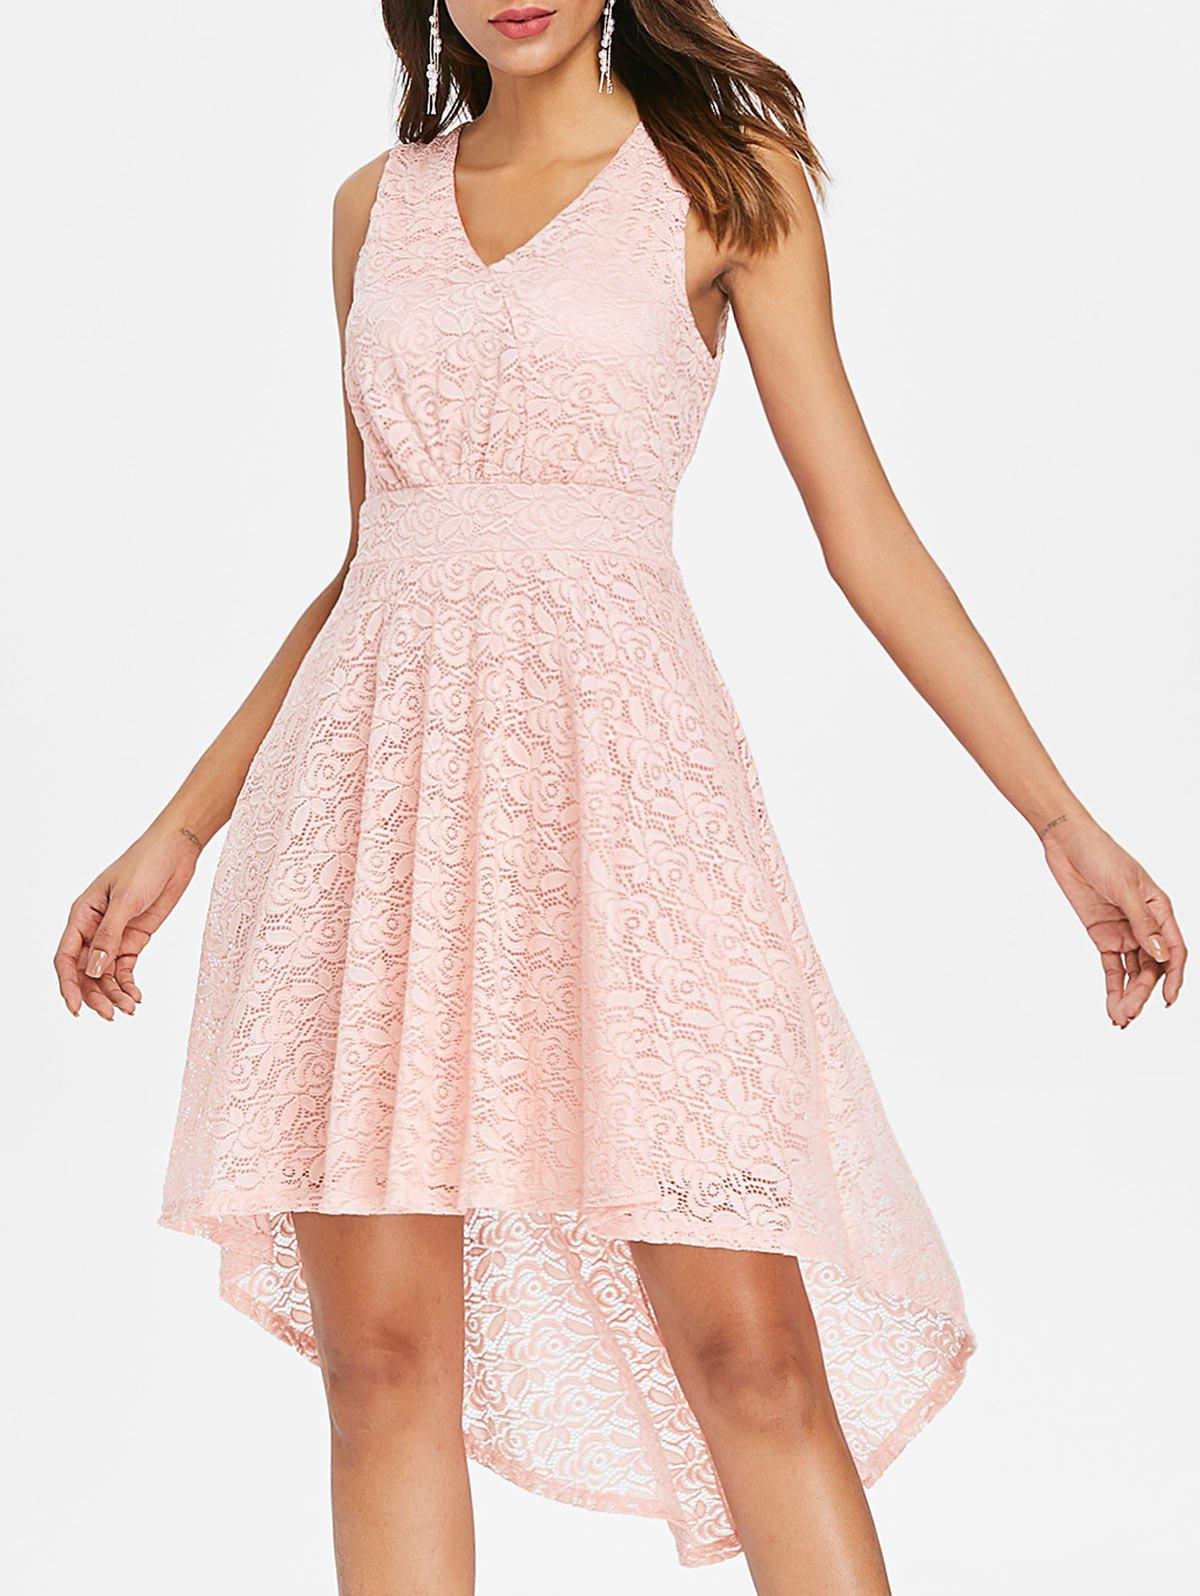 Sale Sleeveless High Low Lace Dress